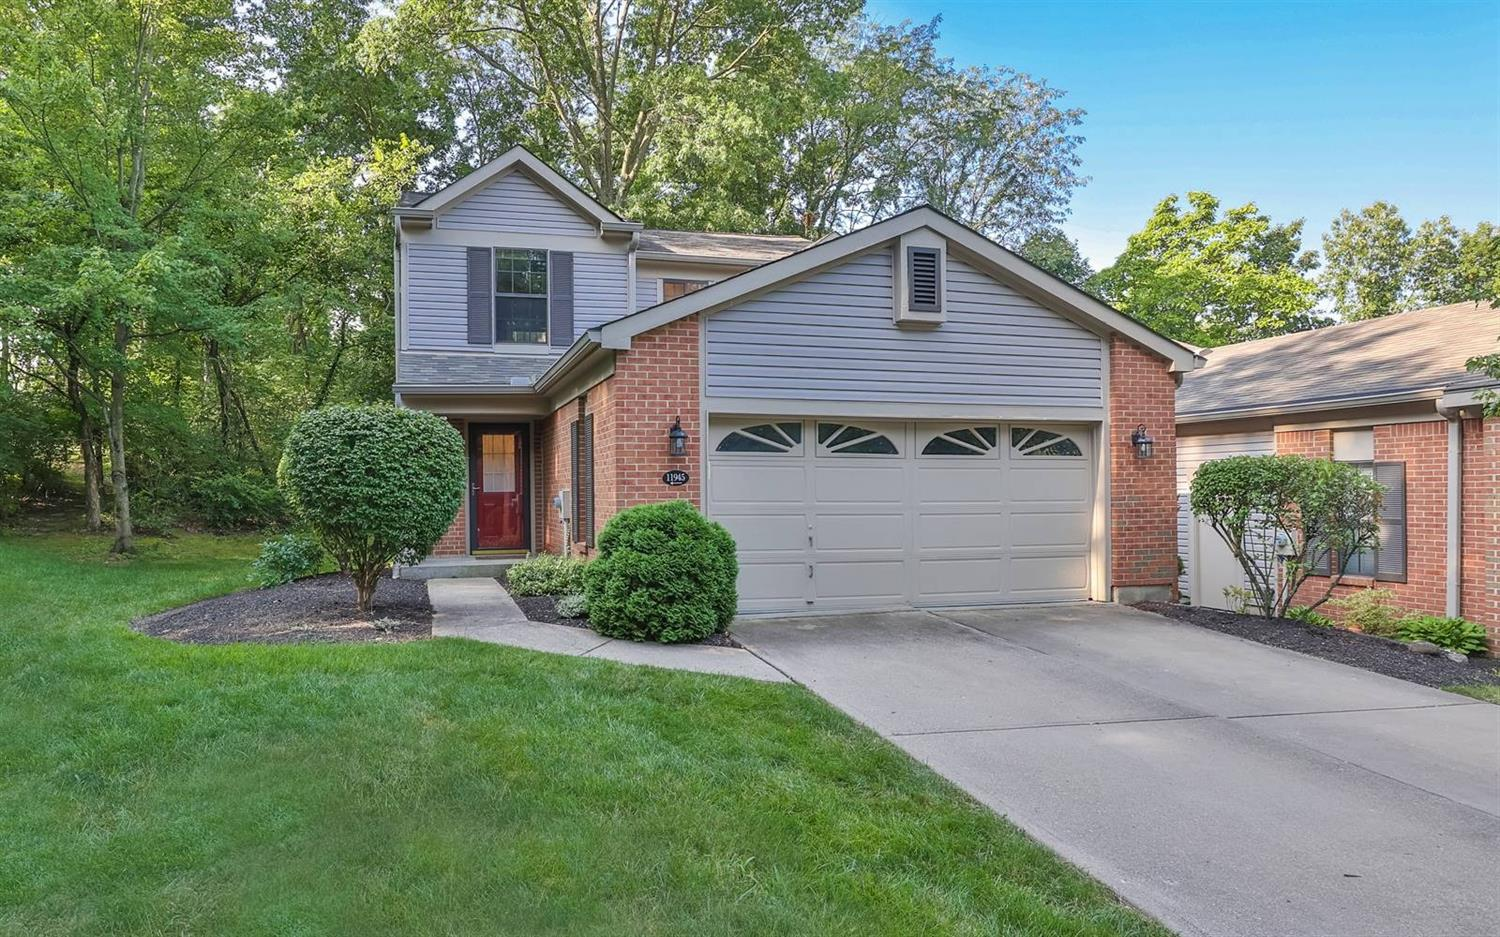 11945 Copperfield Drive, Sharonville, OH 45241